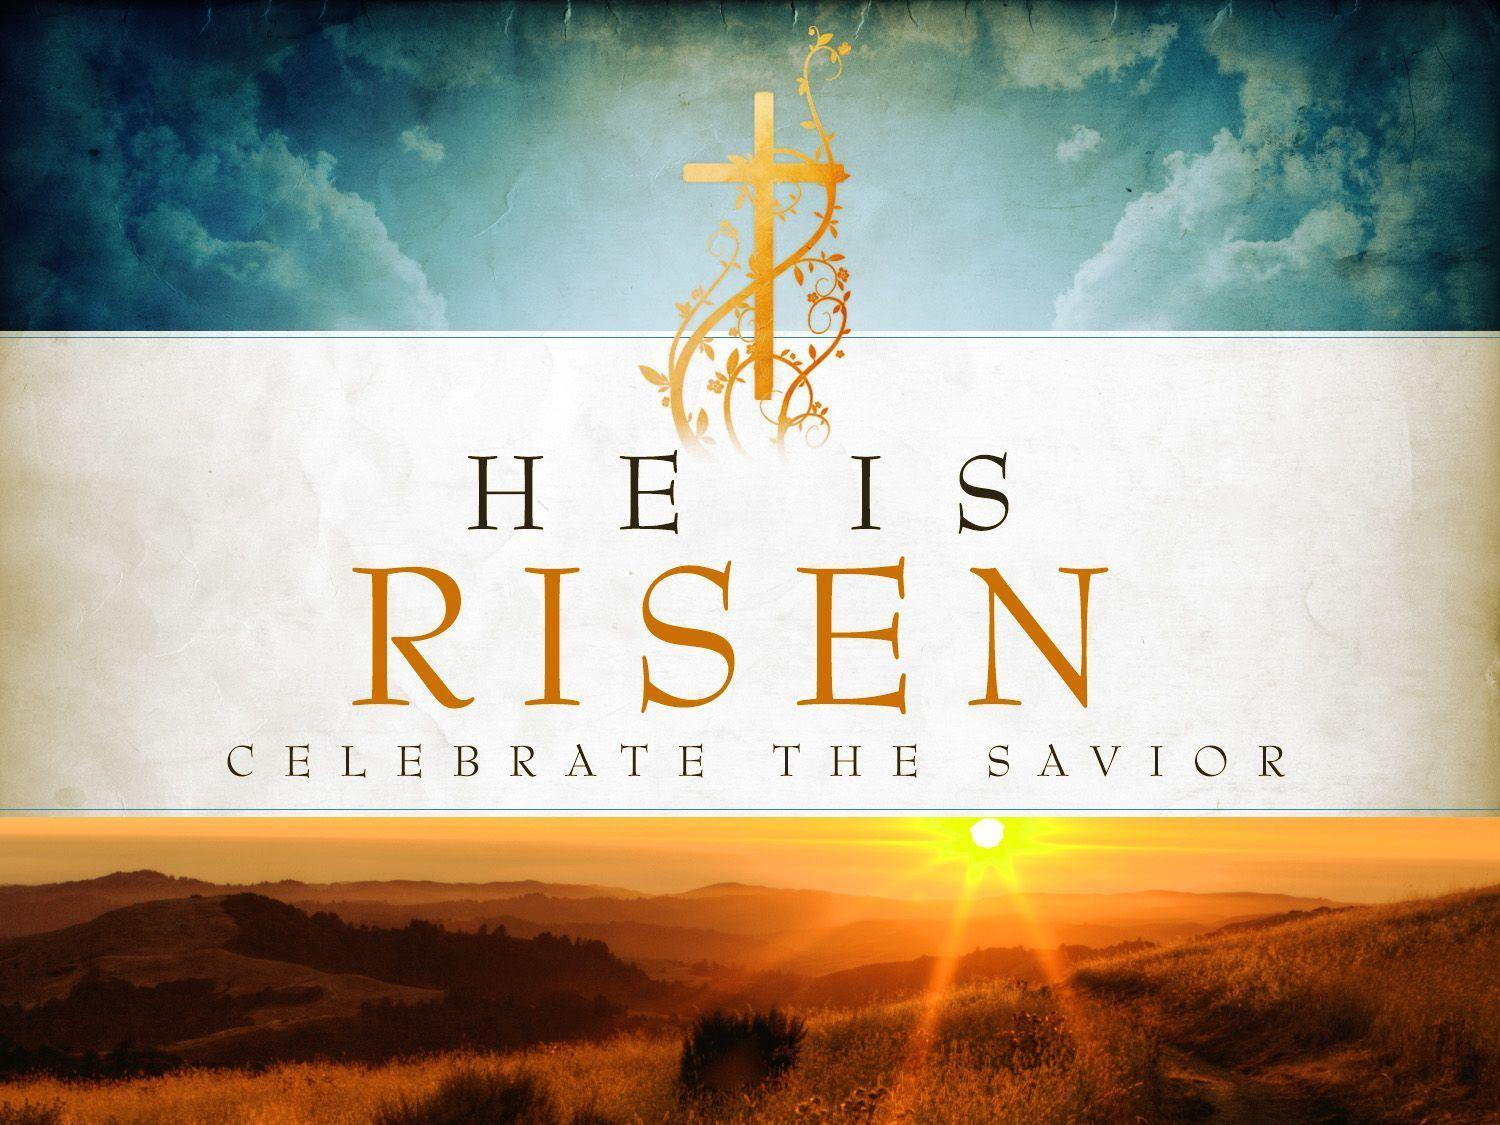 20 Easter Sunday 2014 HD Wallpapers